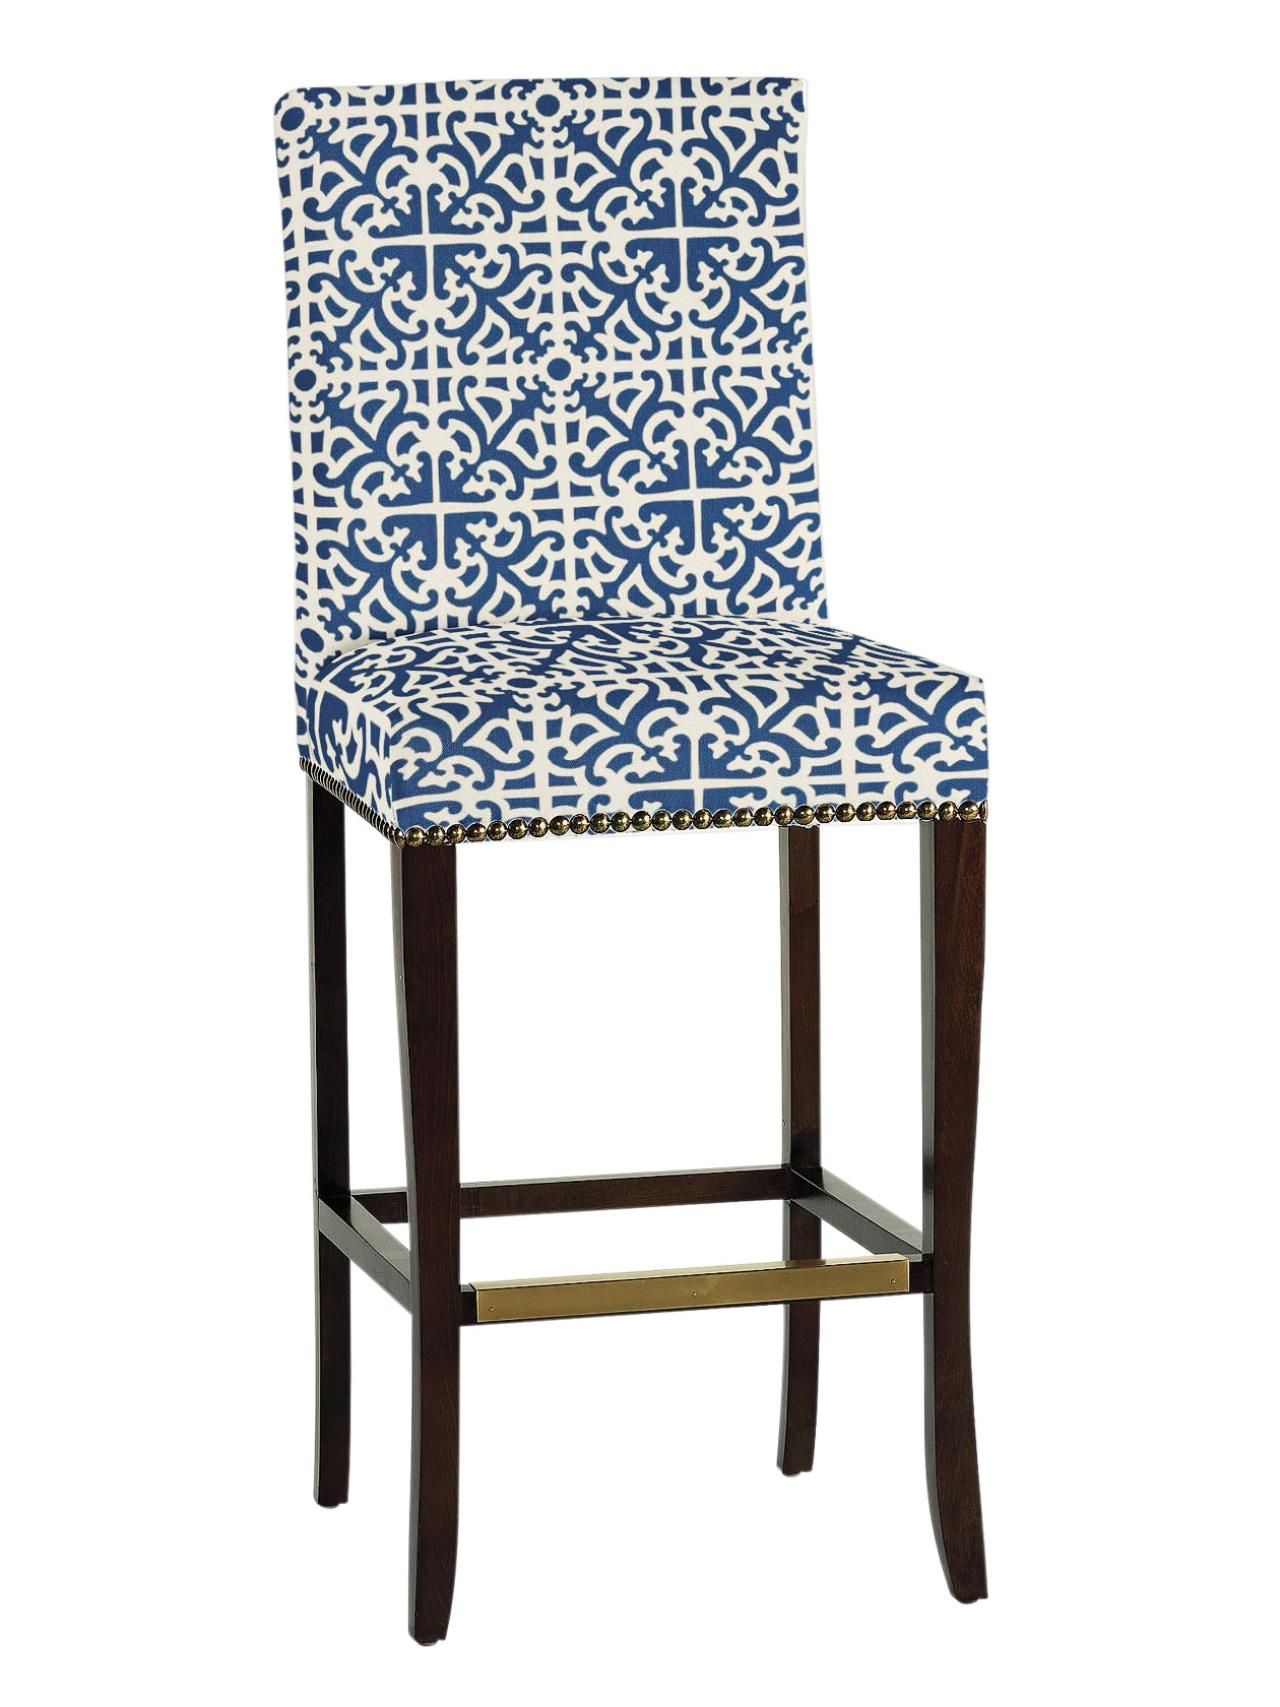 Transitional Bar Stool With Bold Blue and White Patterned Fabric ...